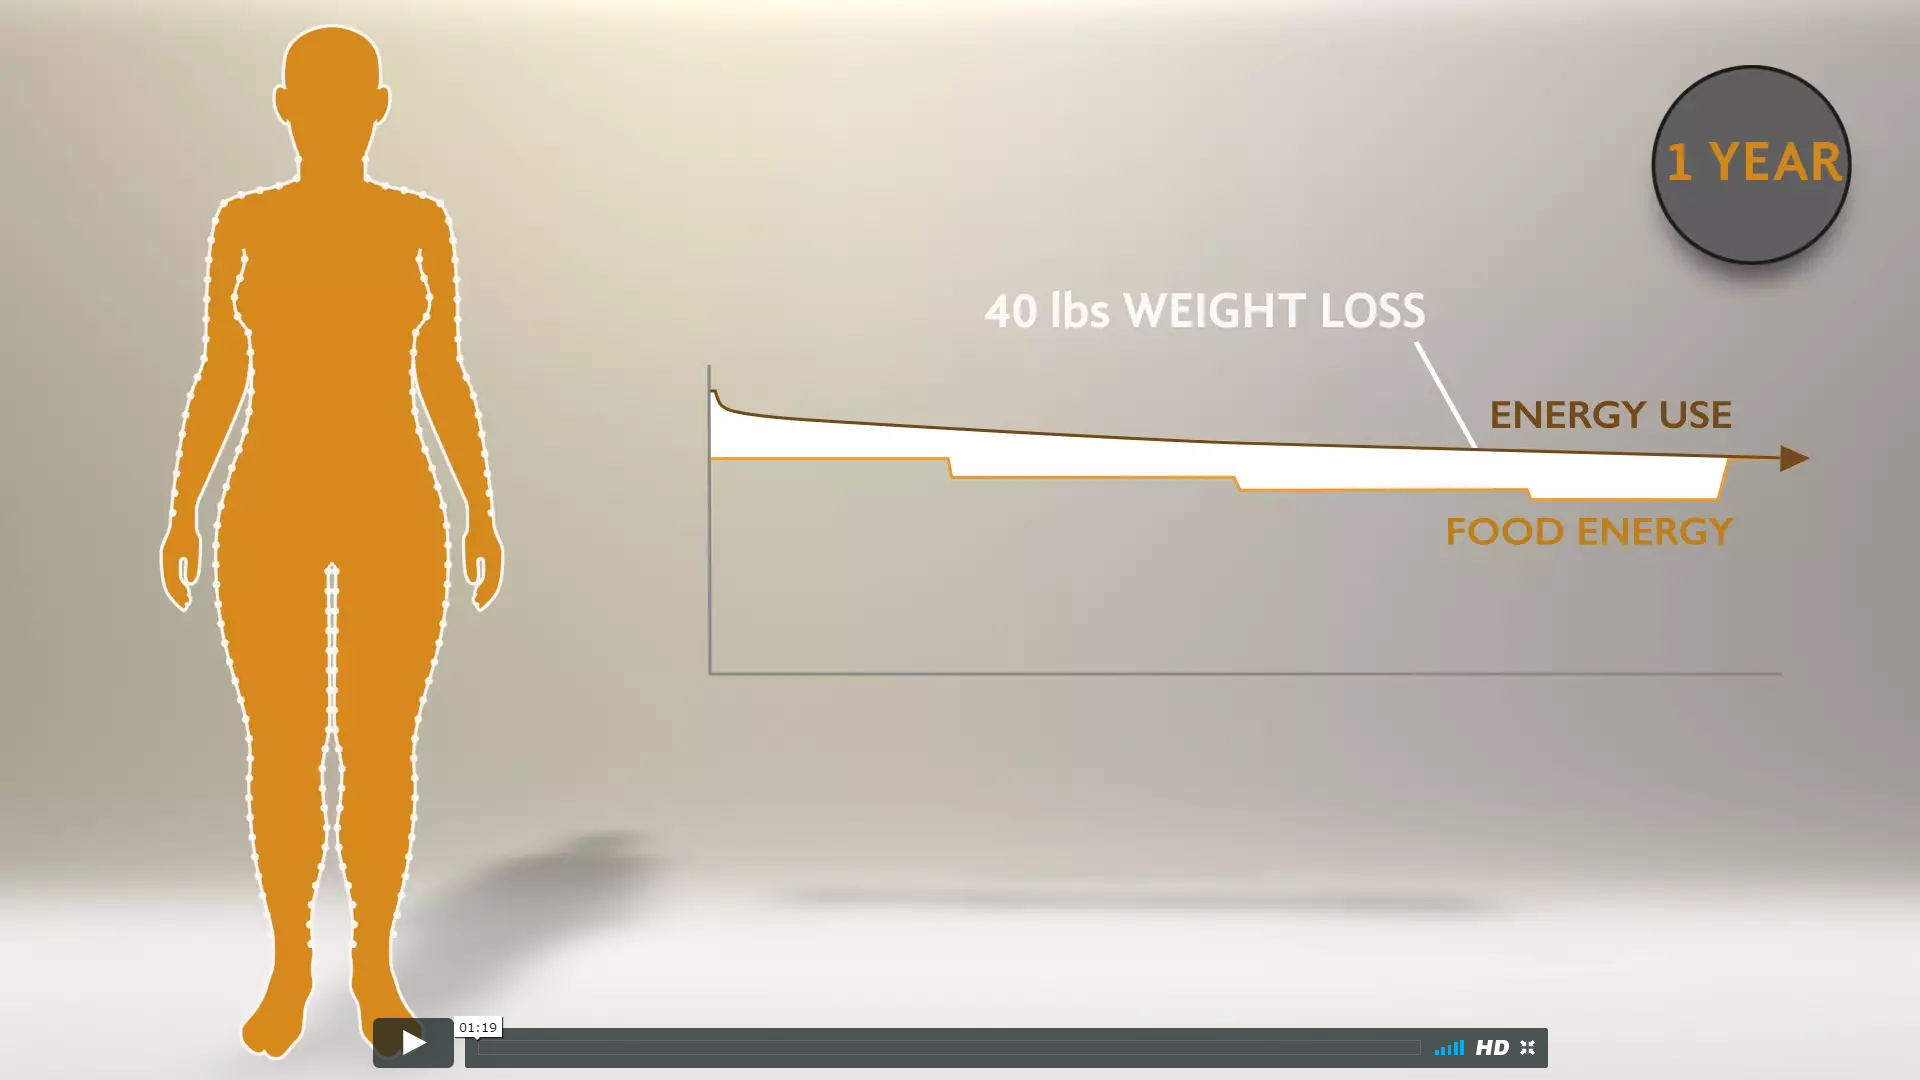 What Is A Calorie Deficit And How Does It Cause Weight Loss